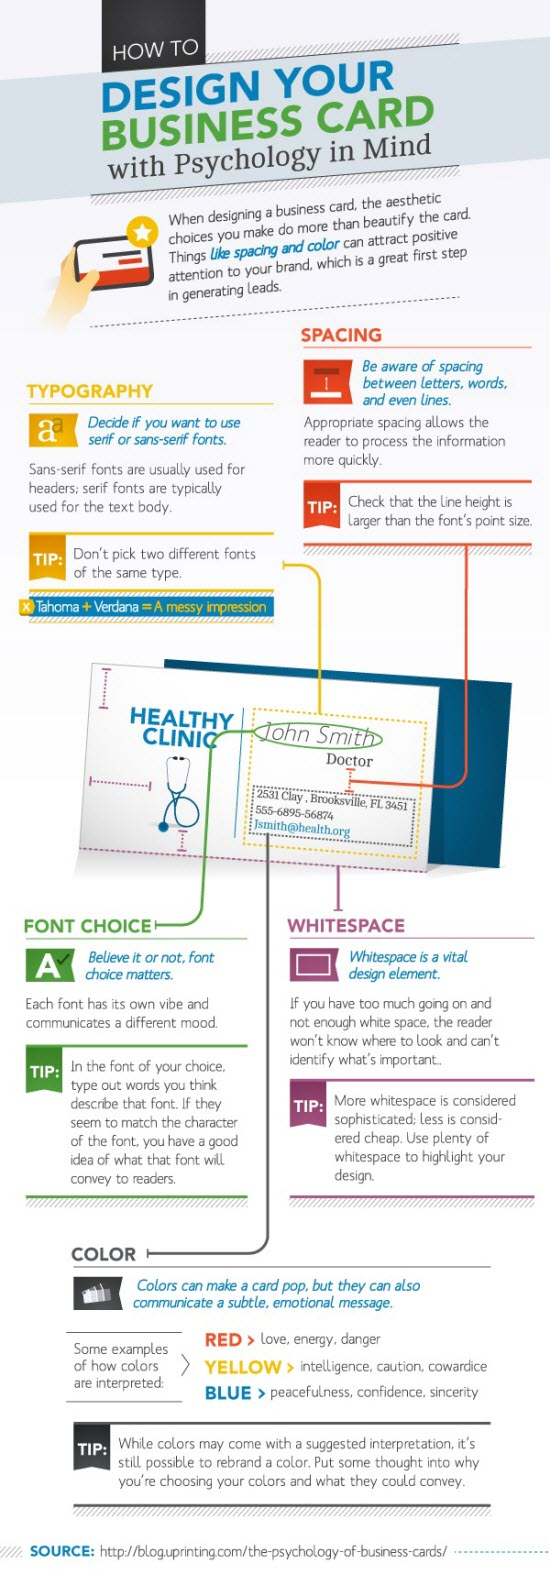 The Psychology of Business Card Design